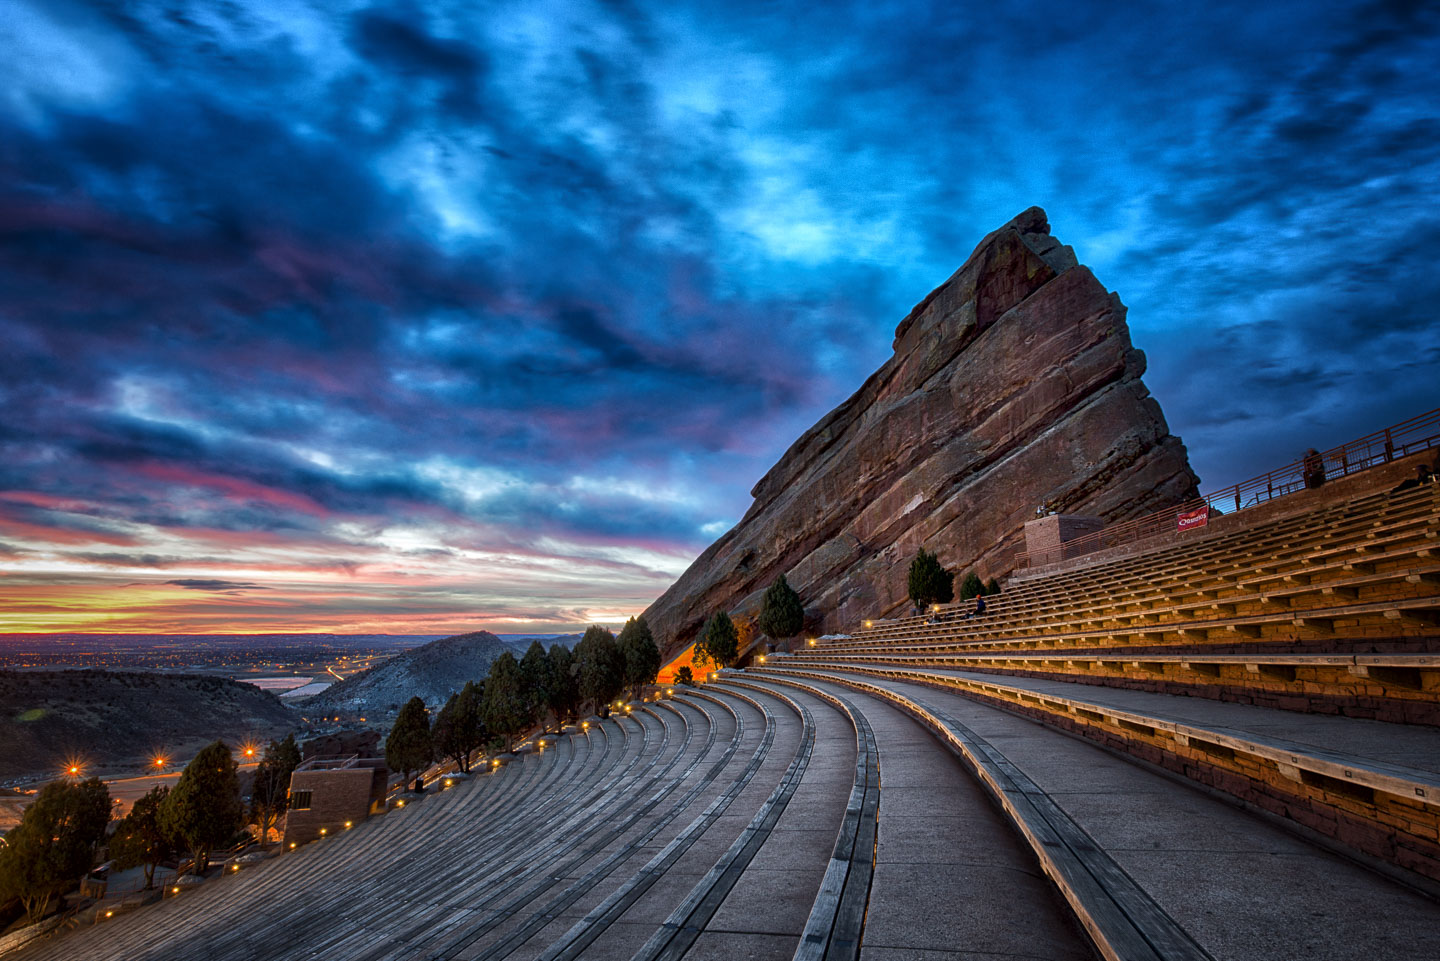 red-rocks-amphitheater-114.jpg